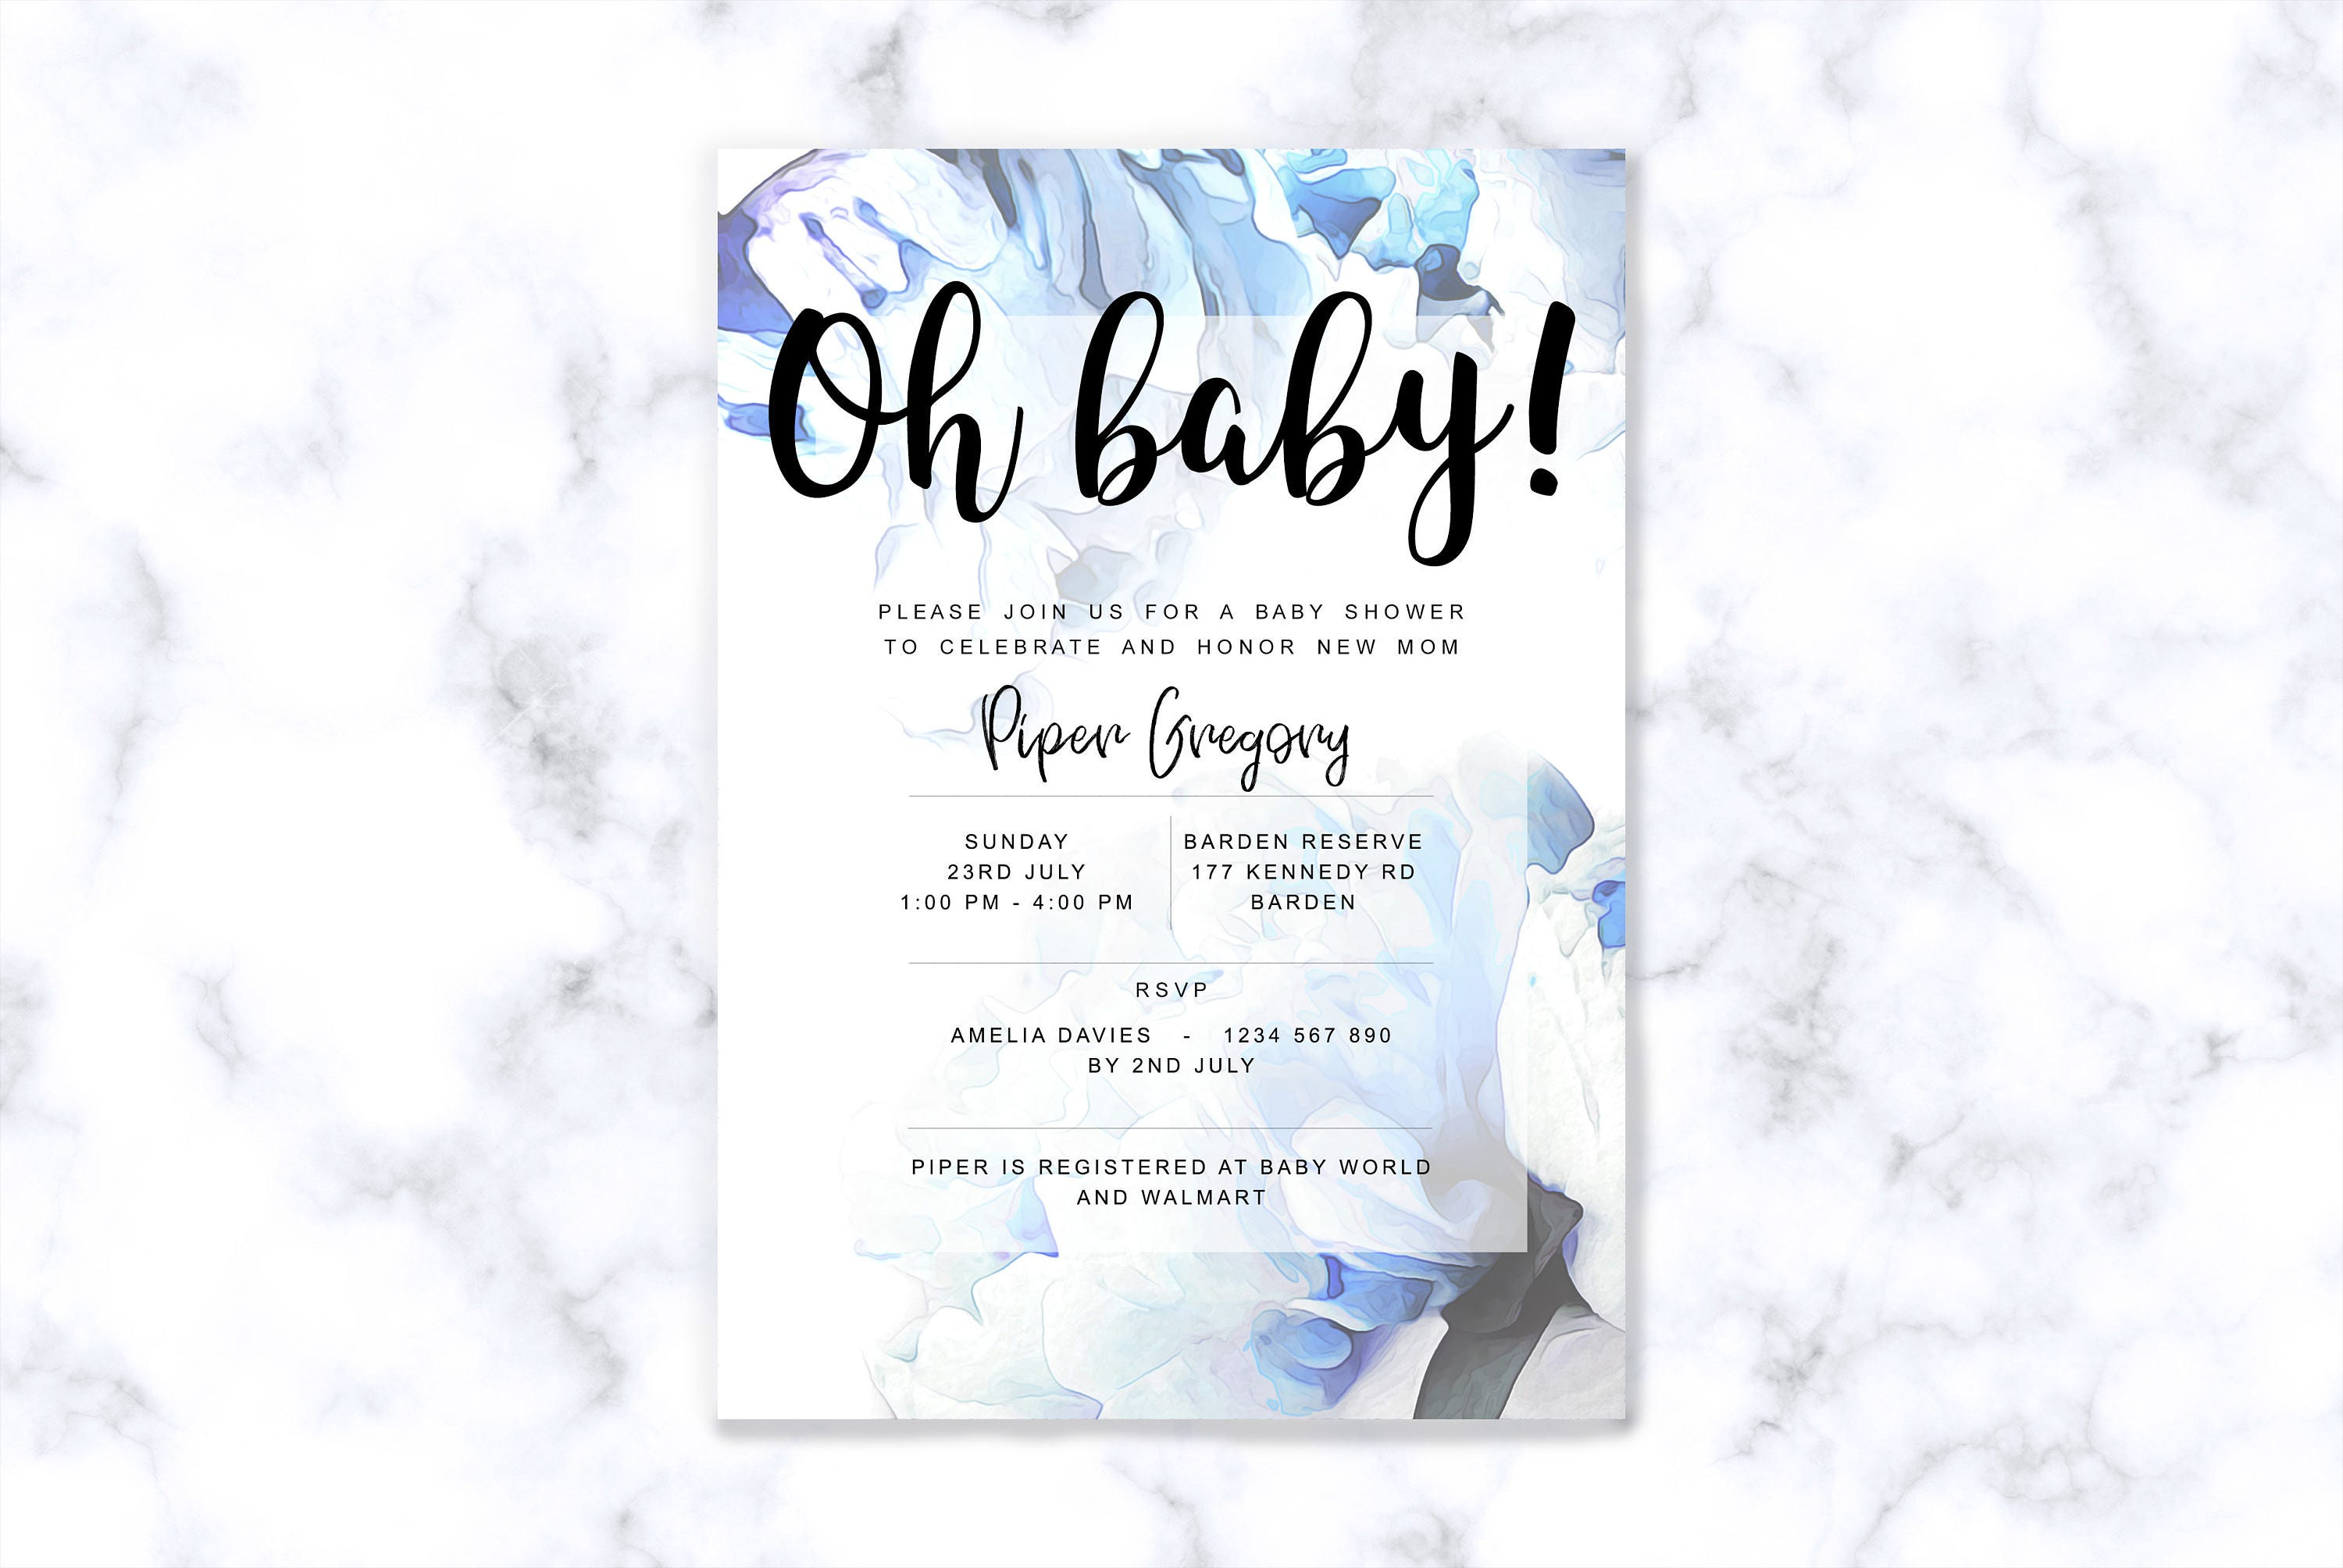 Printable baby shower invitations instant downloadable editable pdf filmwisefo Choice Image